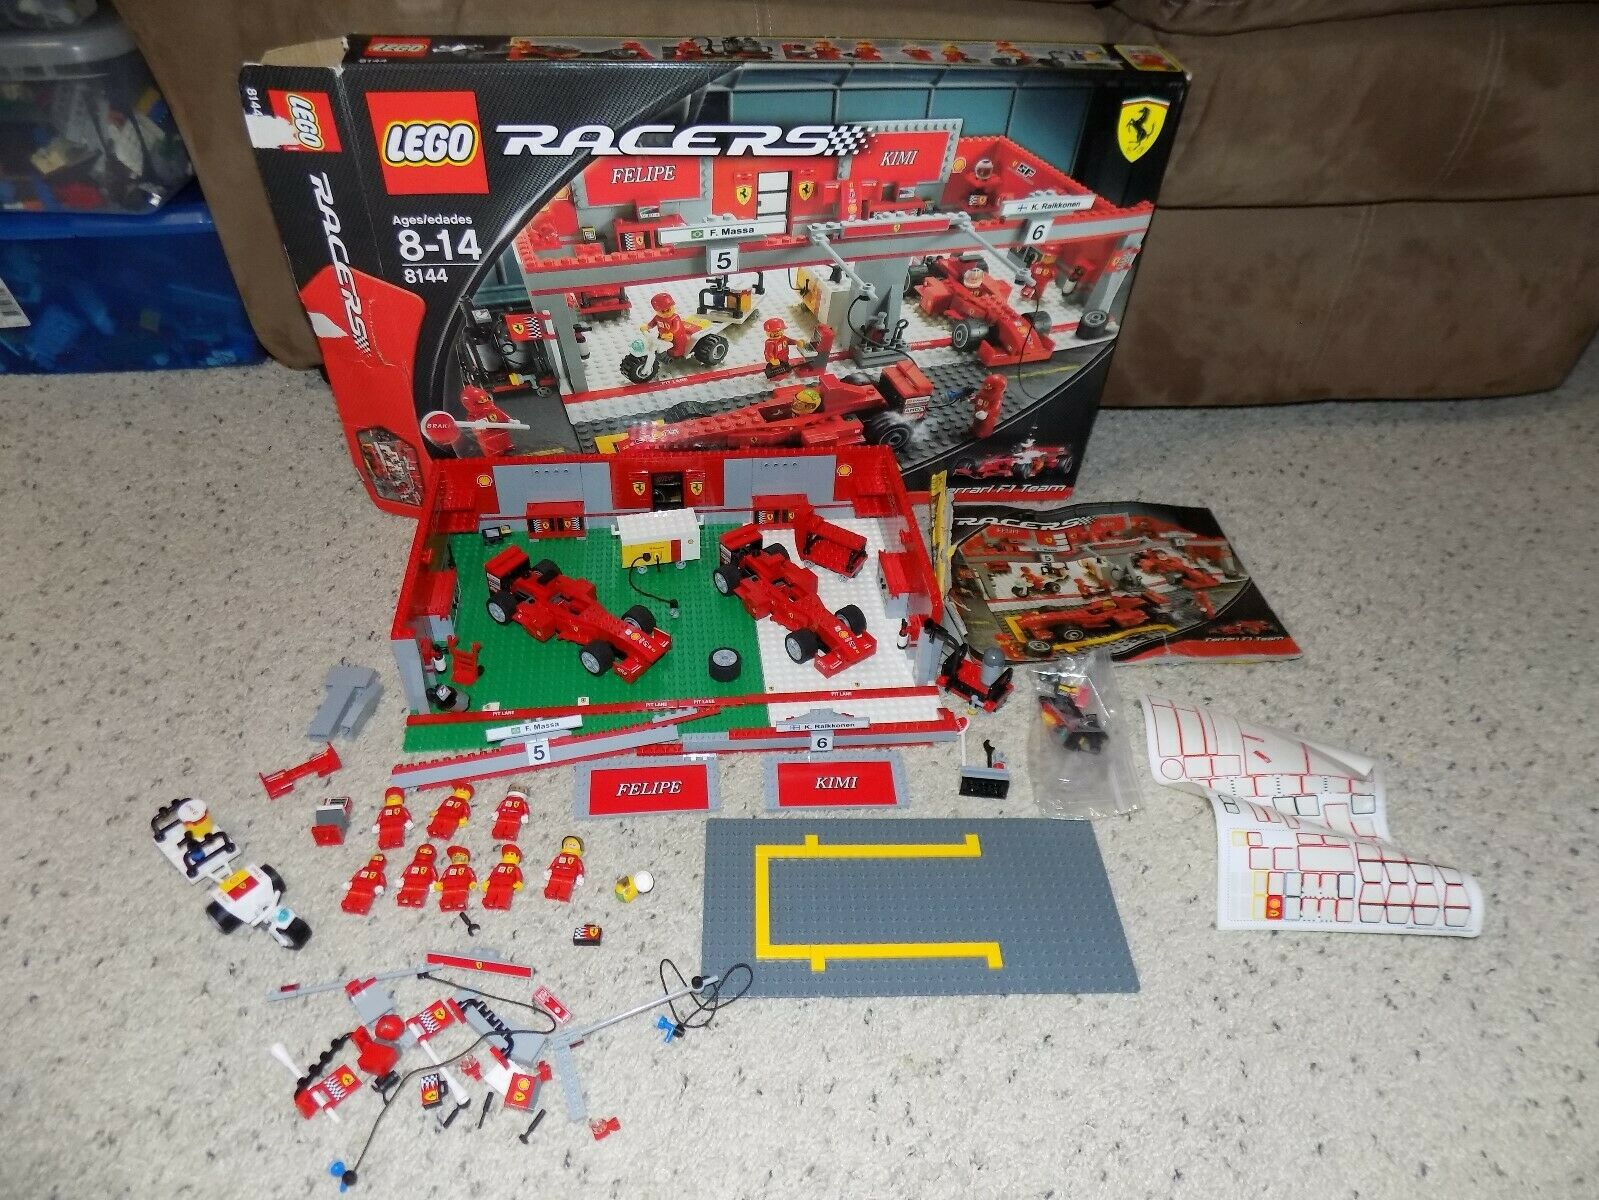 RARE COMPLET LEGO 8144 FERRARI F1 Racers Team W BOX Instructions & minifigures